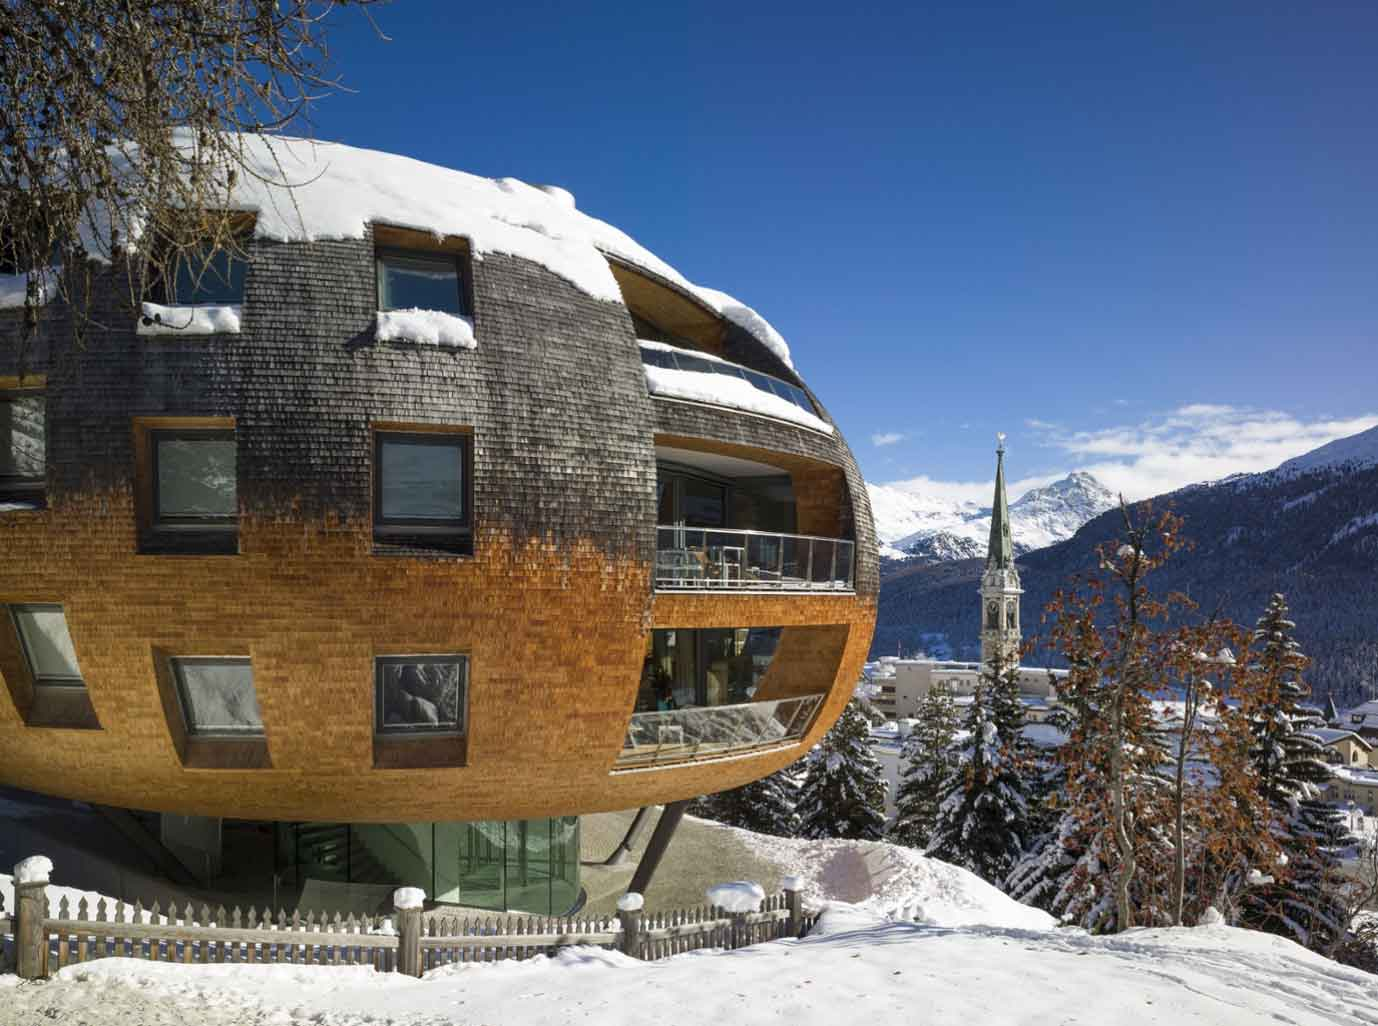 Chesa Futura (house of the future) is the innovative creation of Pritzker Prize-winning British architect Sir Norman Foster. The dynamic bubble-shaped building comprises five ultra-exclusive apartments overlooking the Swiss Alps and the village of St. Moritz.